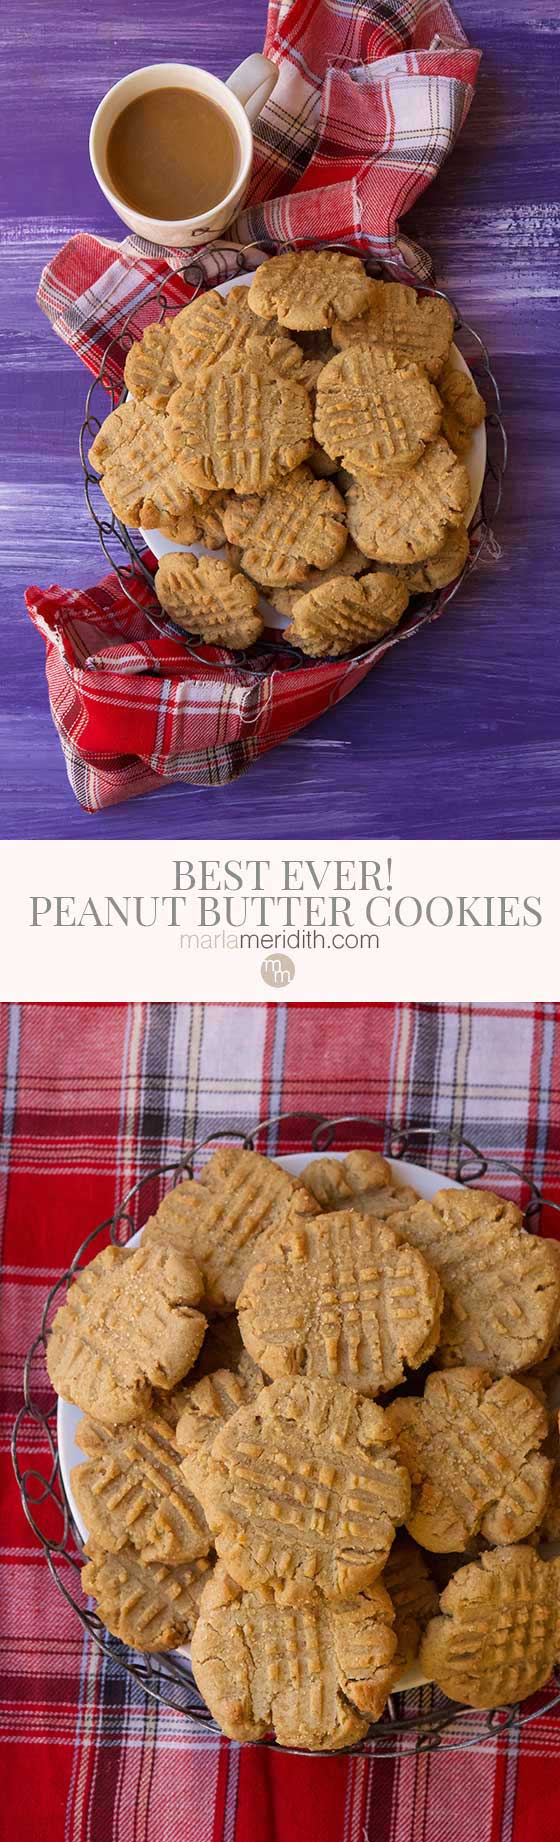 We can't get enough of these absolutely Perfect Peanut Butter Cookies. The recipe is Simple and quick to prepare. Great for work and after-school snacking.